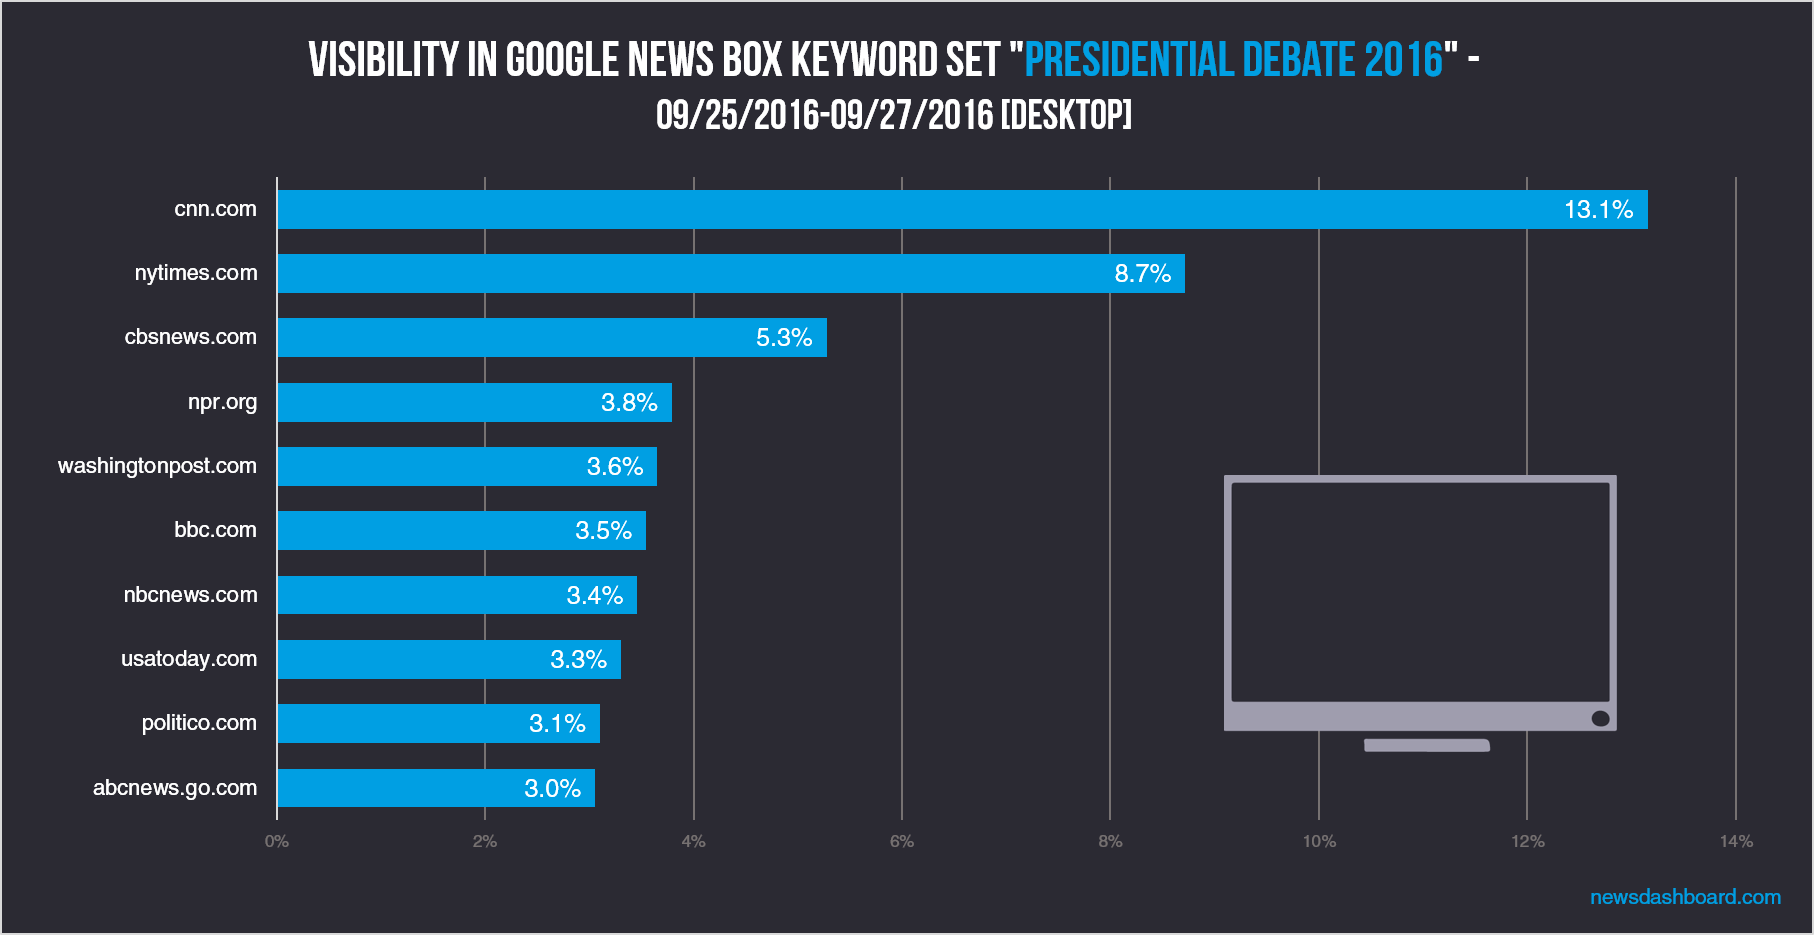 cnn.com and nytimes.com have highest visibility in Google for the topics around presidential debate